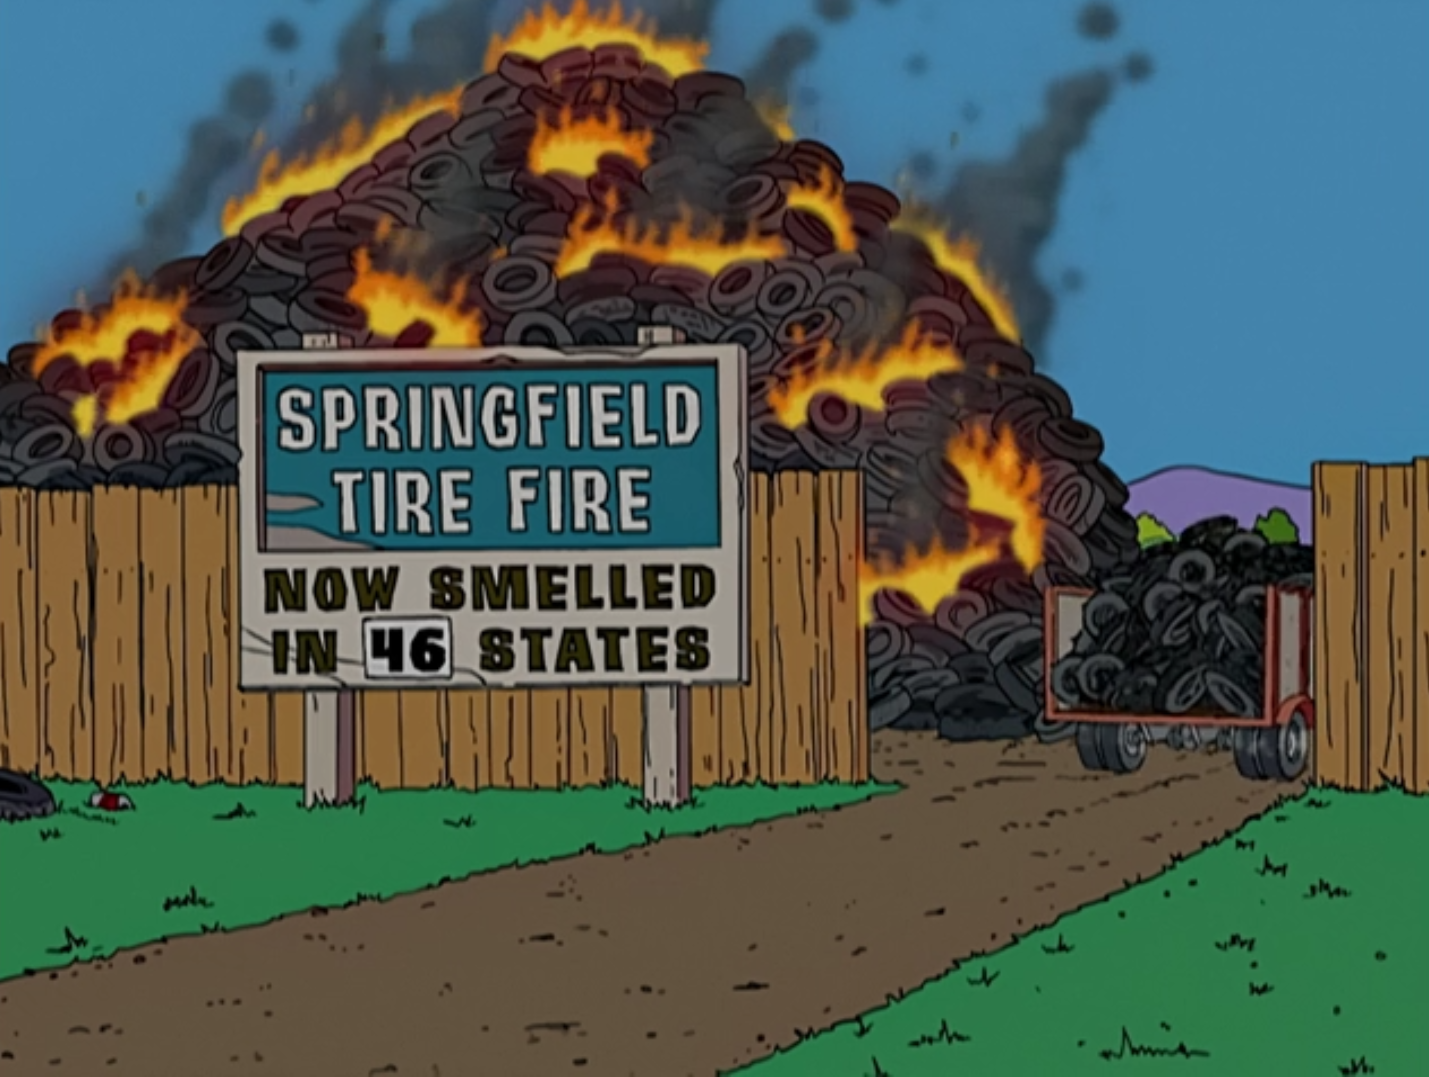 Springfield tire fire.png